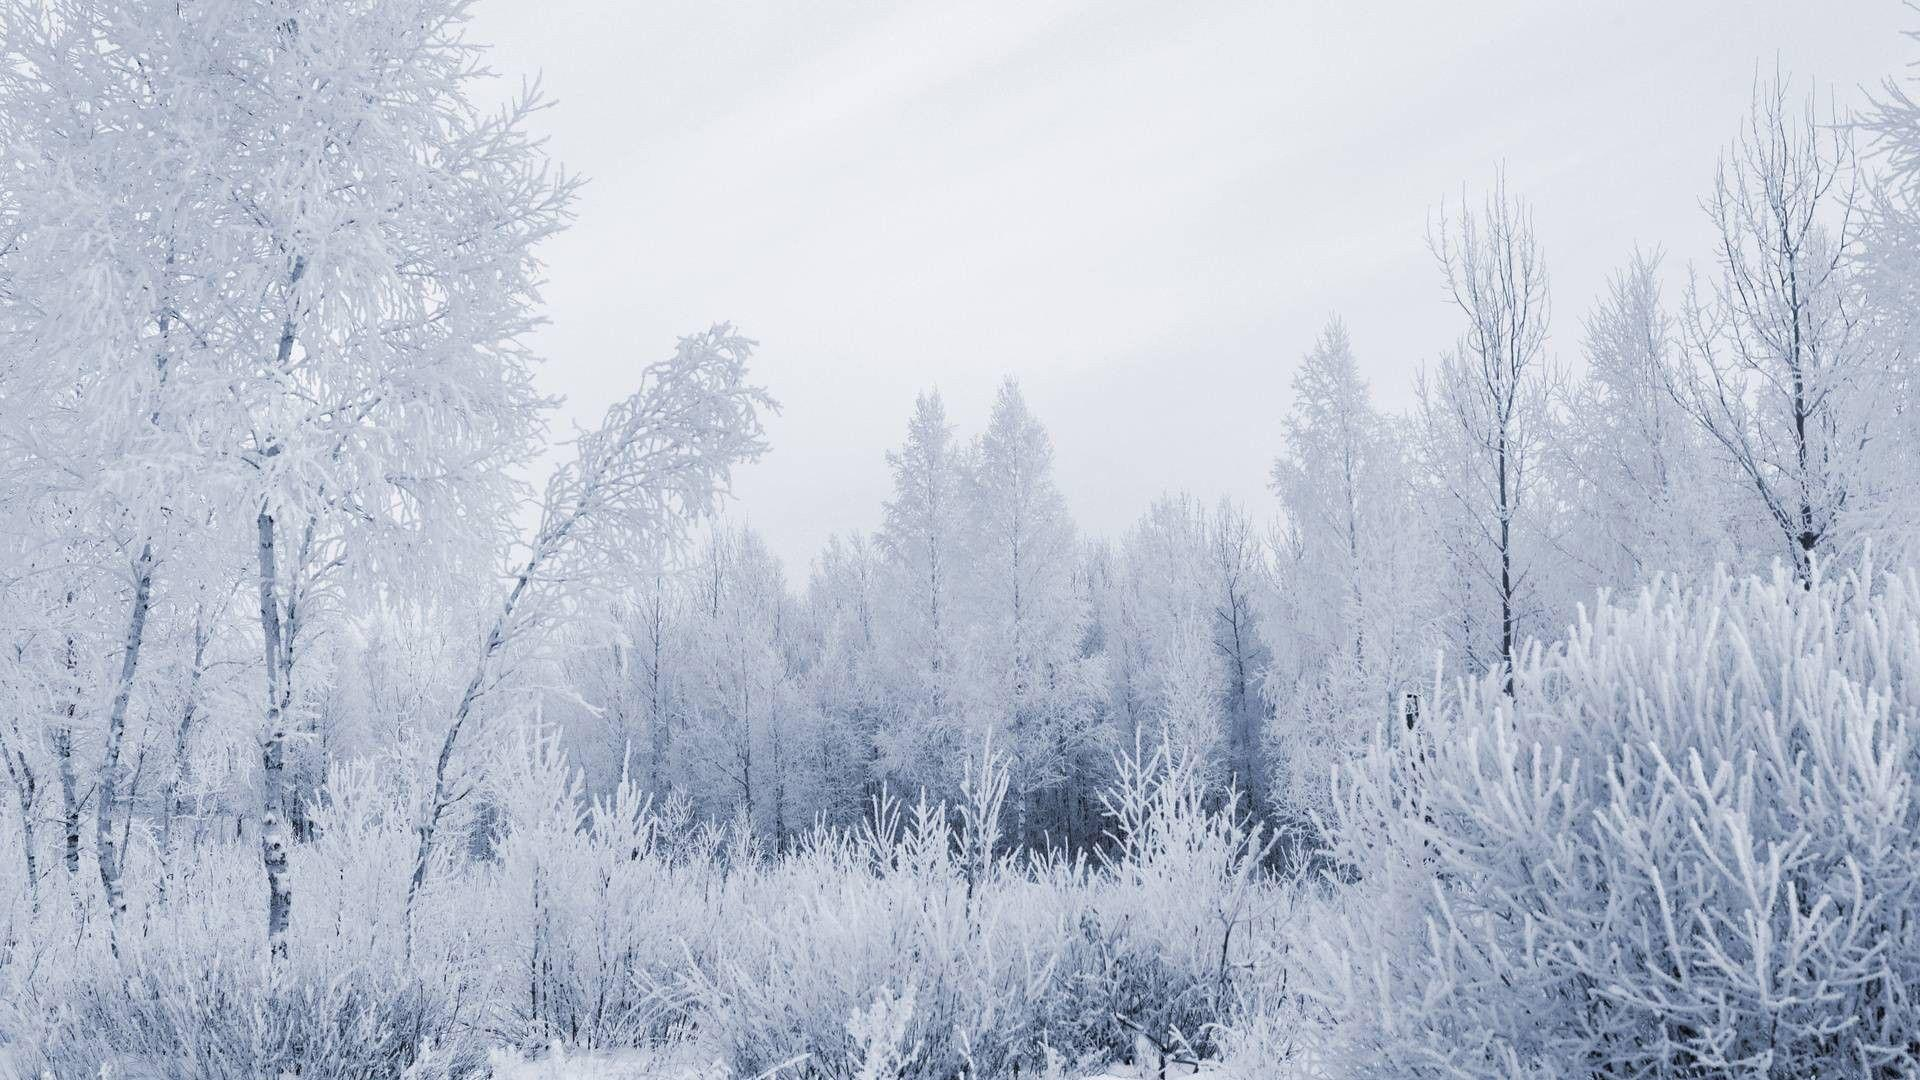 snowy nature wallpaper - photo #18